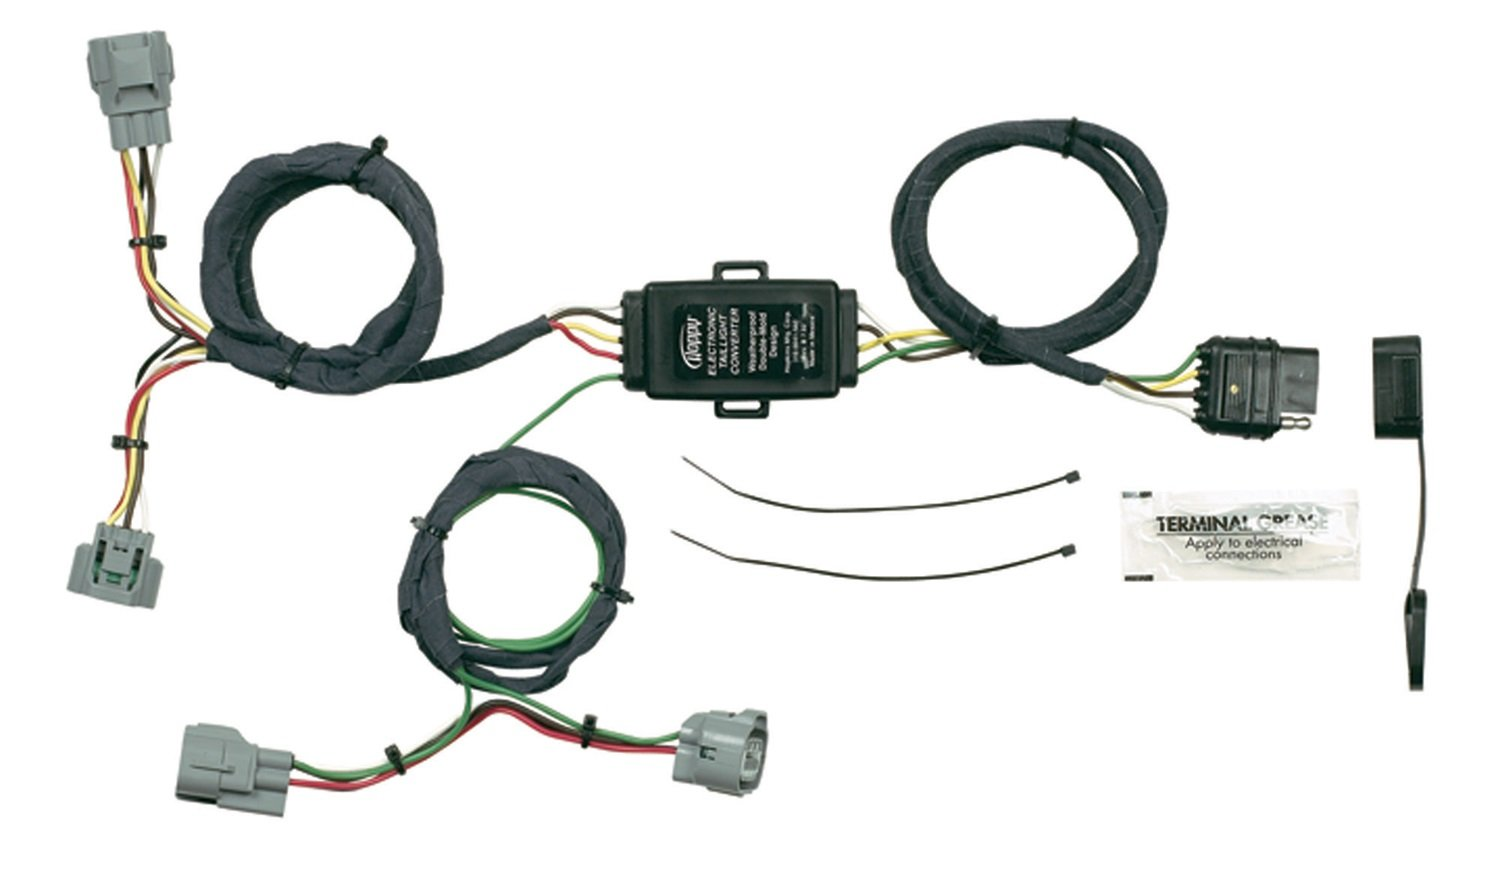 61J3Pn4wzzL._SL1500_ amazon com hopkins 43355 plug in simple vehicle wiring kit Toyota Tacoma Trailer Wiring Harness at webbmarketing.co